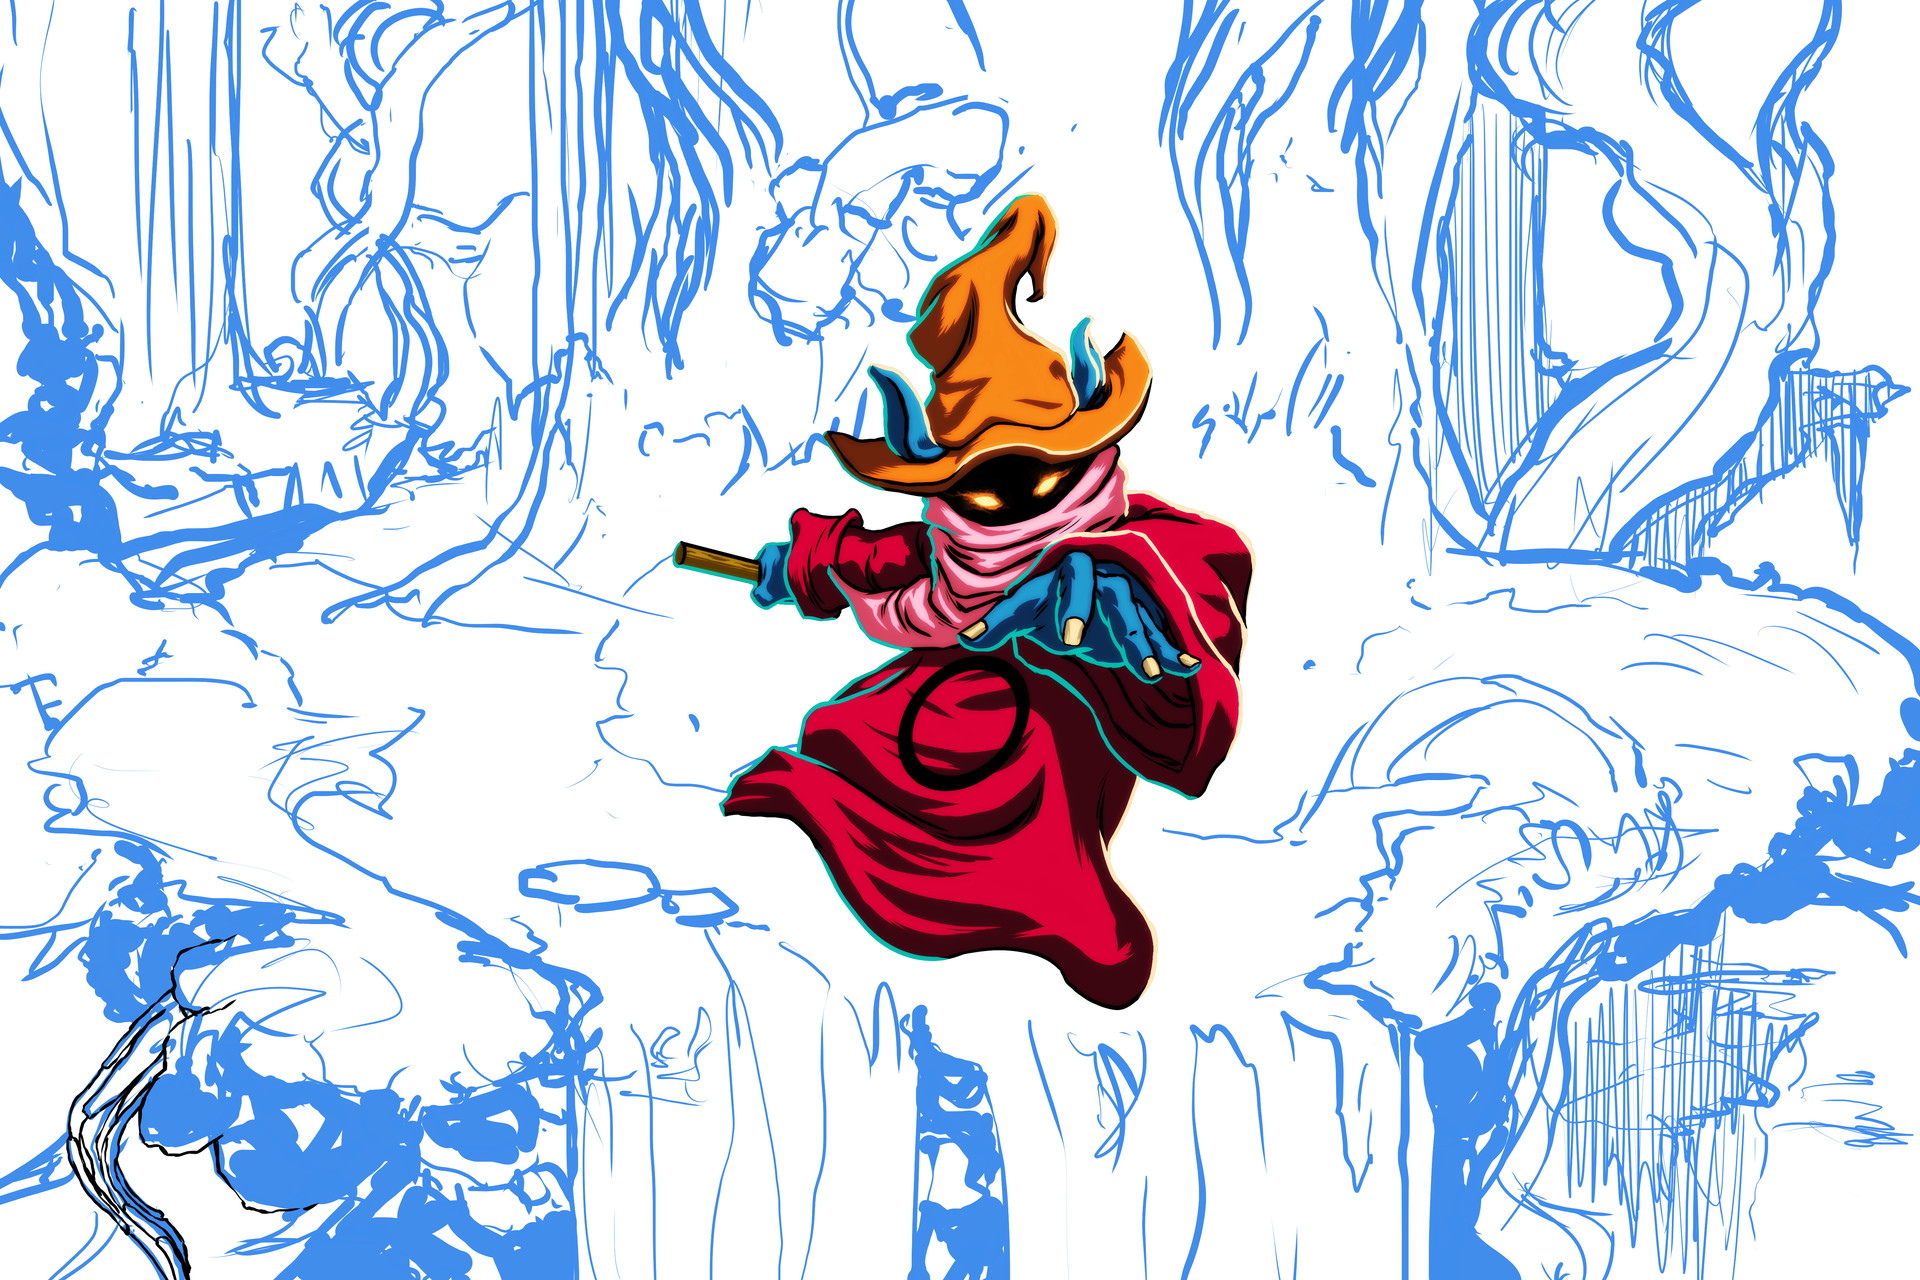 Tony washington orko ws 2